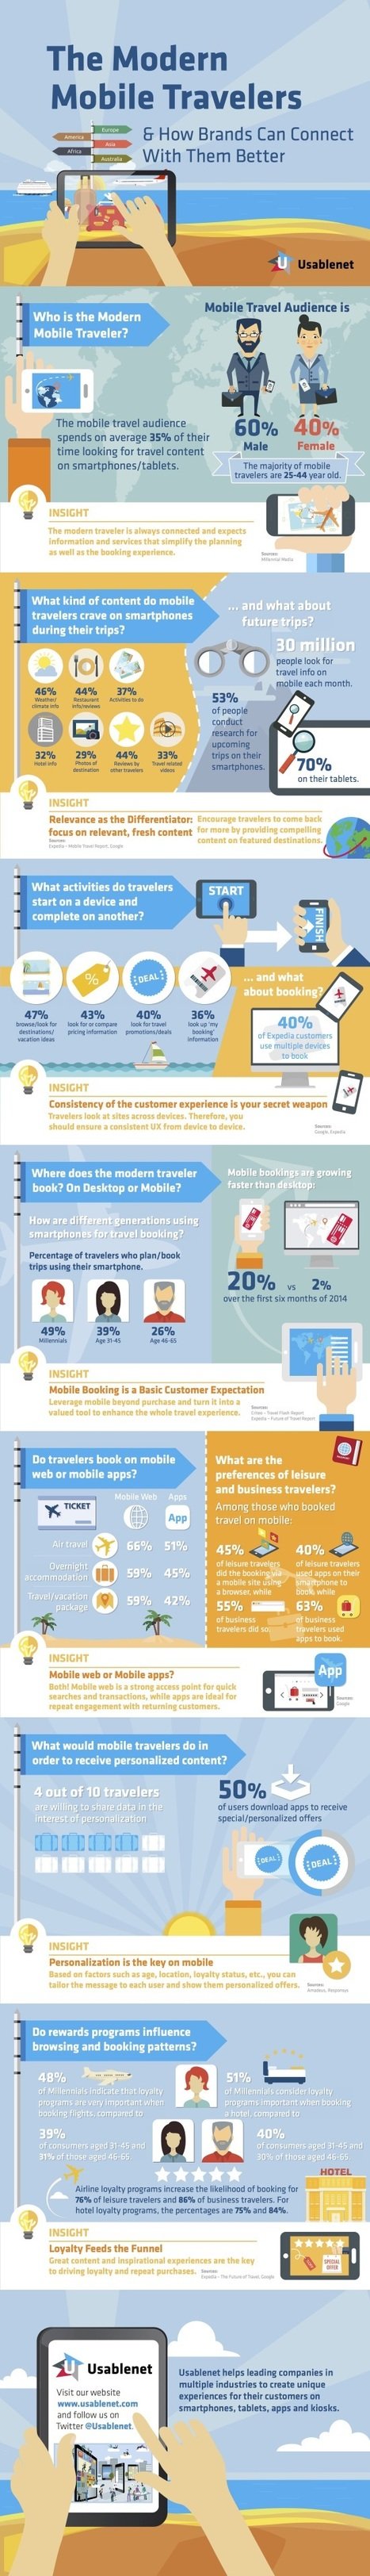 How brands can connect with modern mobile travelers #INFOGRAPHIC | MarketingHits | Scoop.it